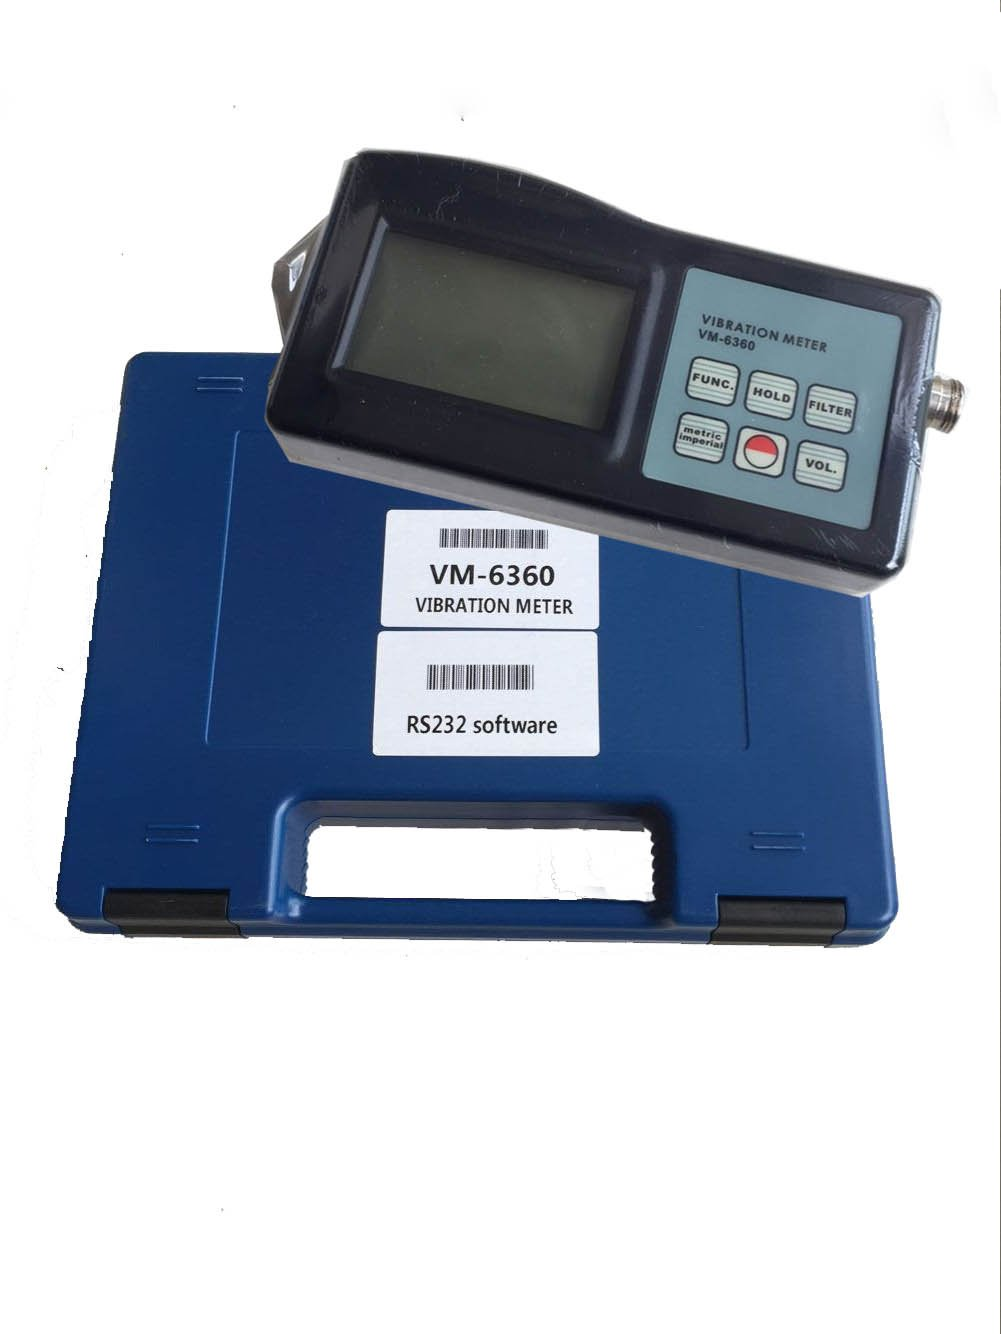 VM6360 Digital Vibration Meter Tester Vibrometer Gauge with RS232 Cable + Software VM-6360 , Blue